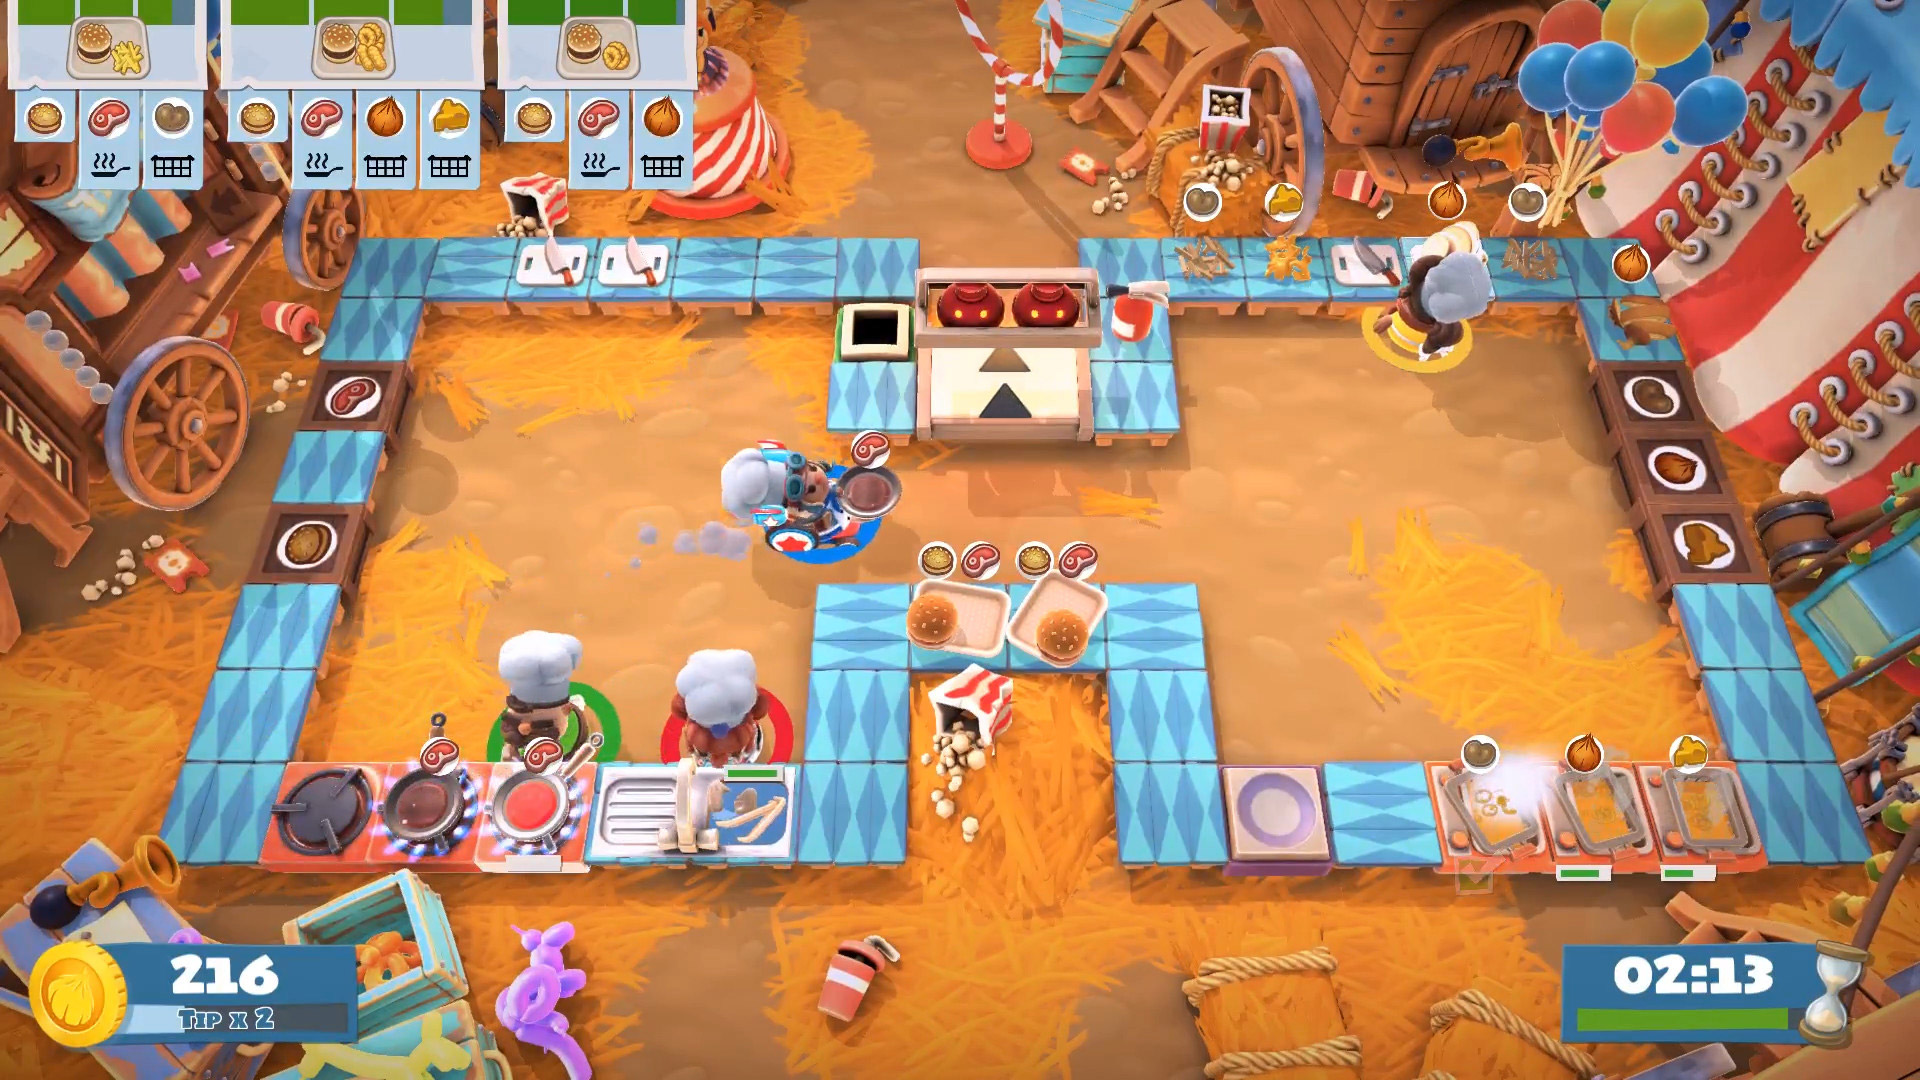 Overcooked 2 - Carnival of Chaos review for Nintendo Switch